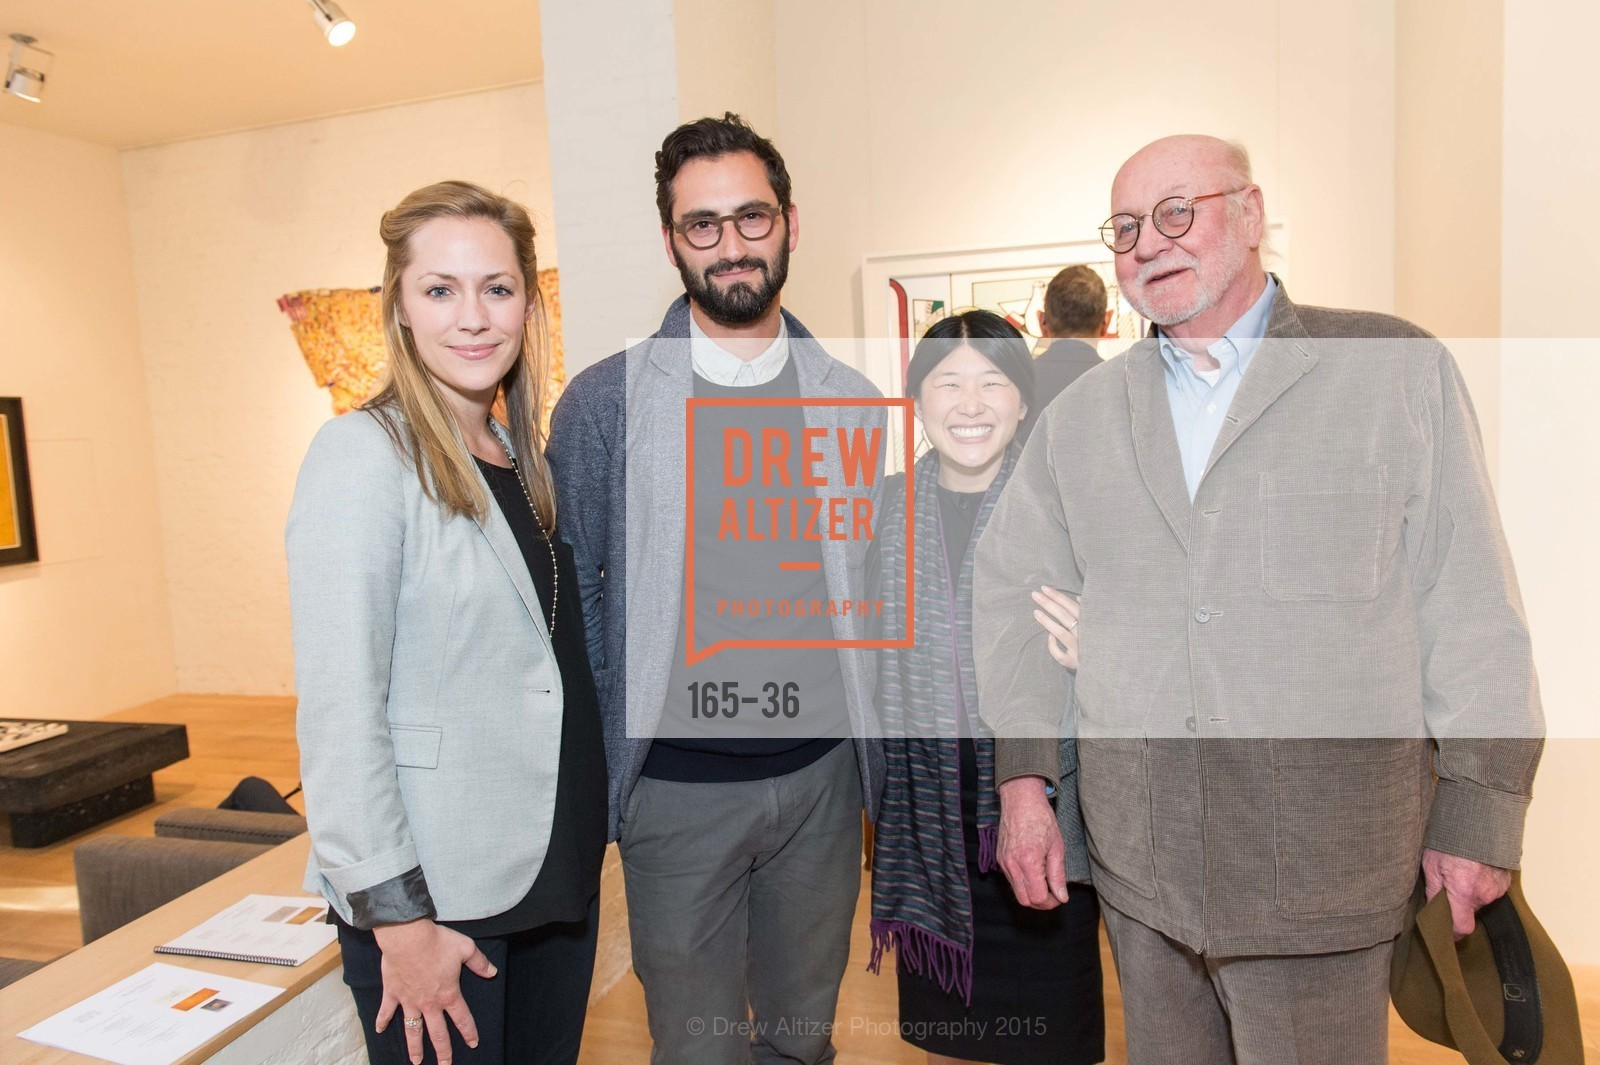 Liz Hurley, Joseph Becker, Micki Meng, Jack Wendler, Post War and Contemporary preview at Hedge Gallery , Hedge Gallery. 501 Pacific Ave, San Francisco, CA 94133, April 16th, 2015,Drew Altizer, Drew Altizer Photography, full-service agency, private events, San Francisco photographer, photographer california